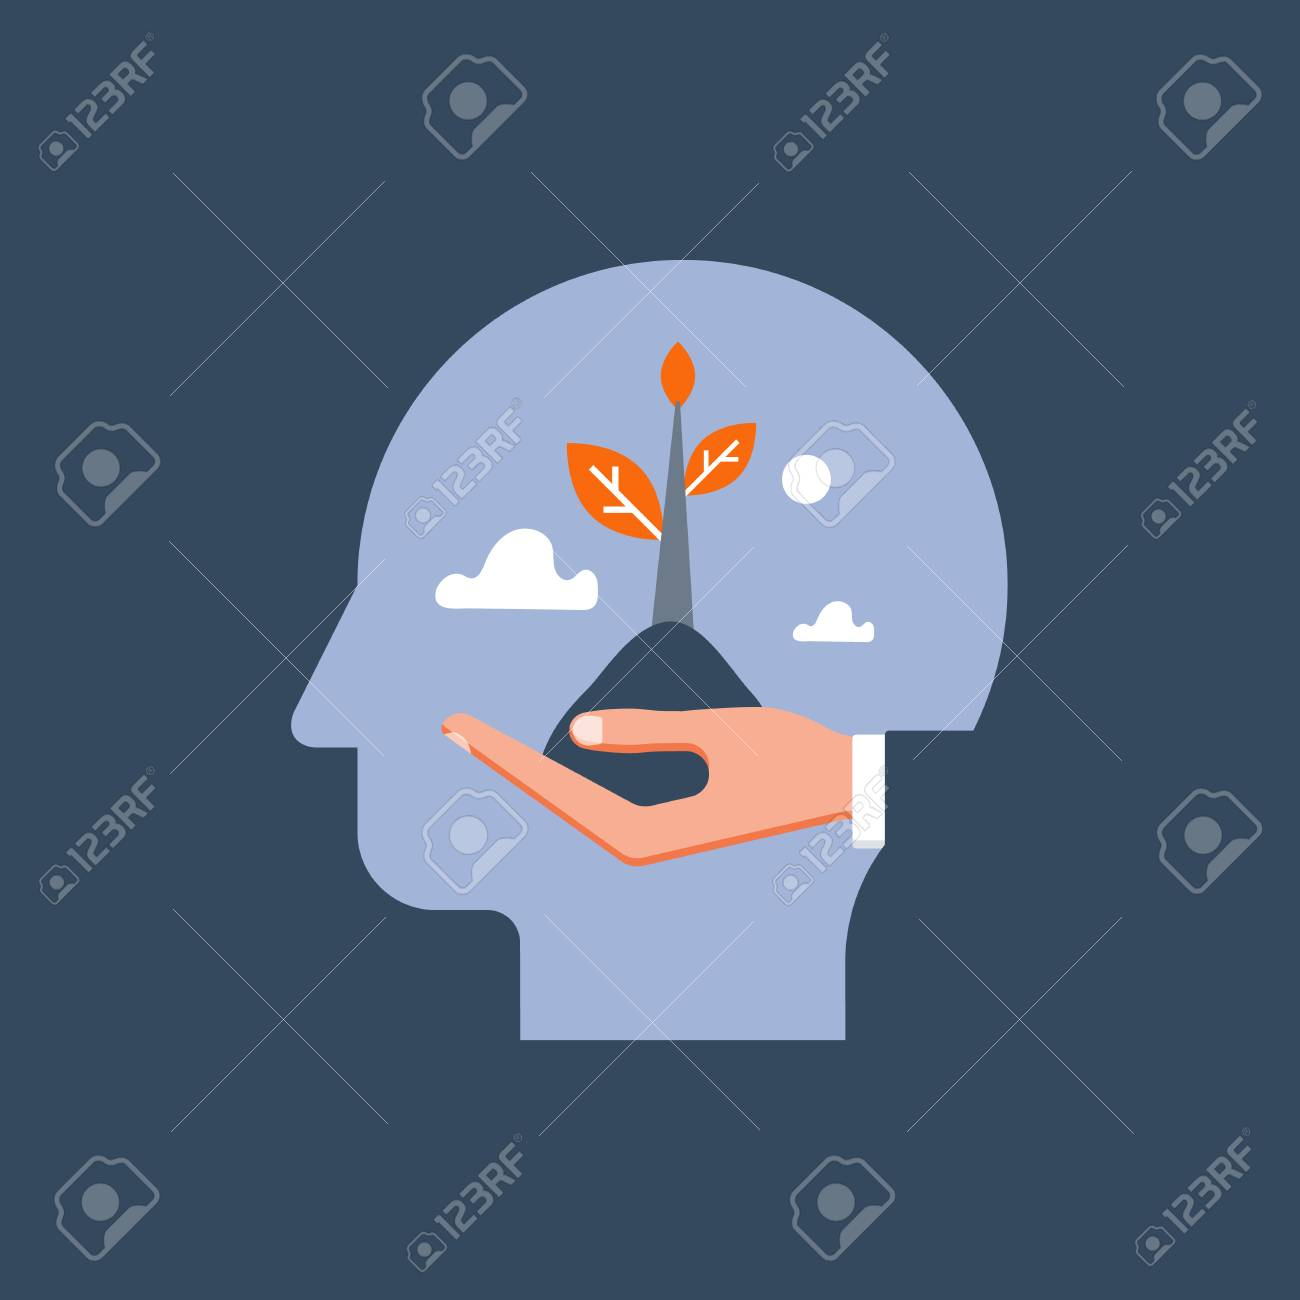 Self growth, potential development, motivation and aspiration, mental health care, positive mindset, psychotherapy and analysis, pursuit of happiness, hand holding steam, vector illustration - 110974821